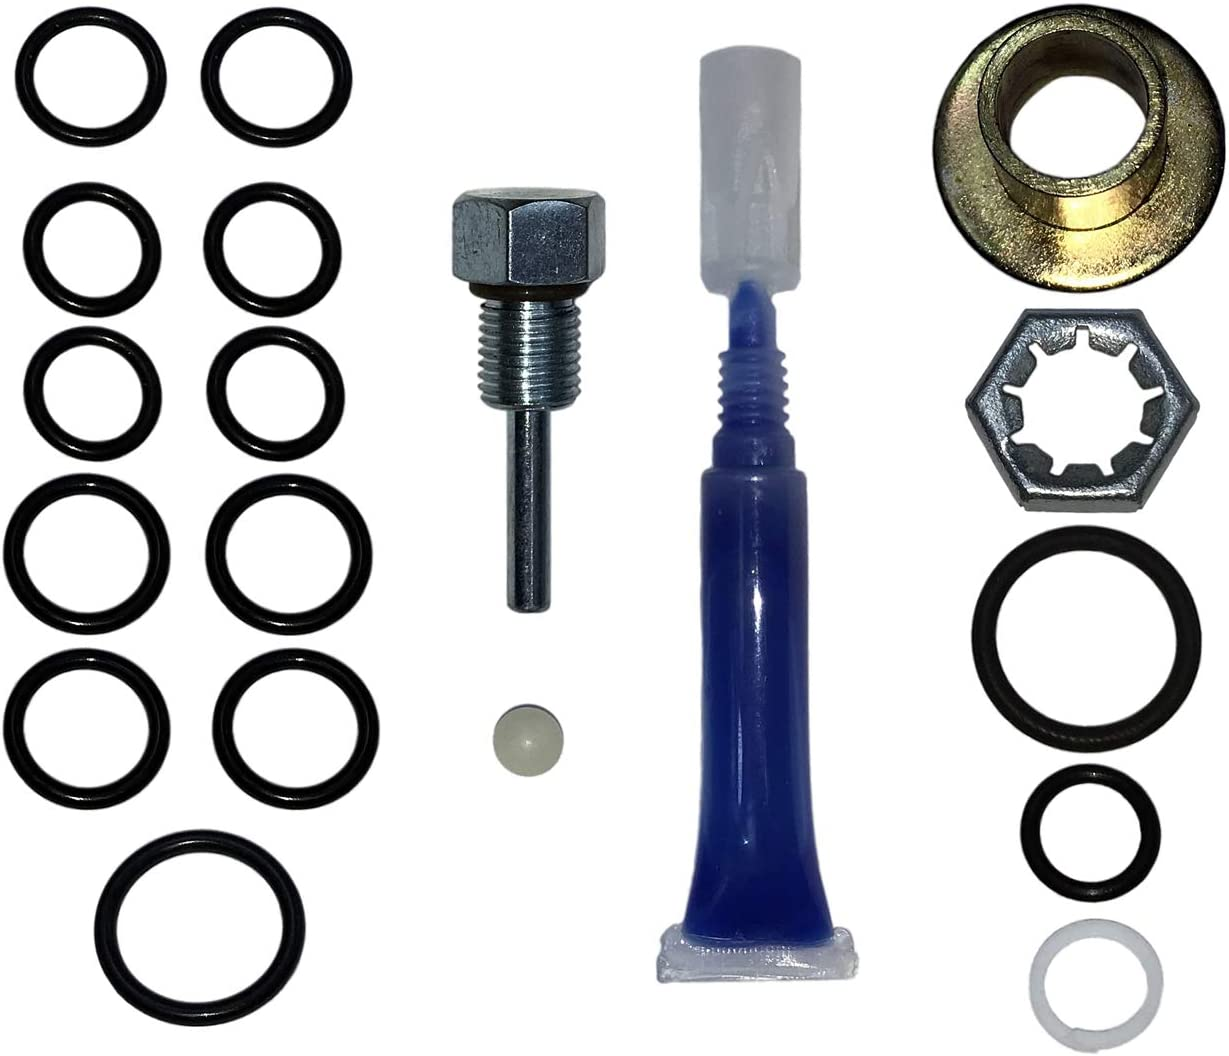 TamerX Diesel Same day shipping High Pressure Oil Pump Ford Seal Powerstro Kit We OFFer at cheap prices for